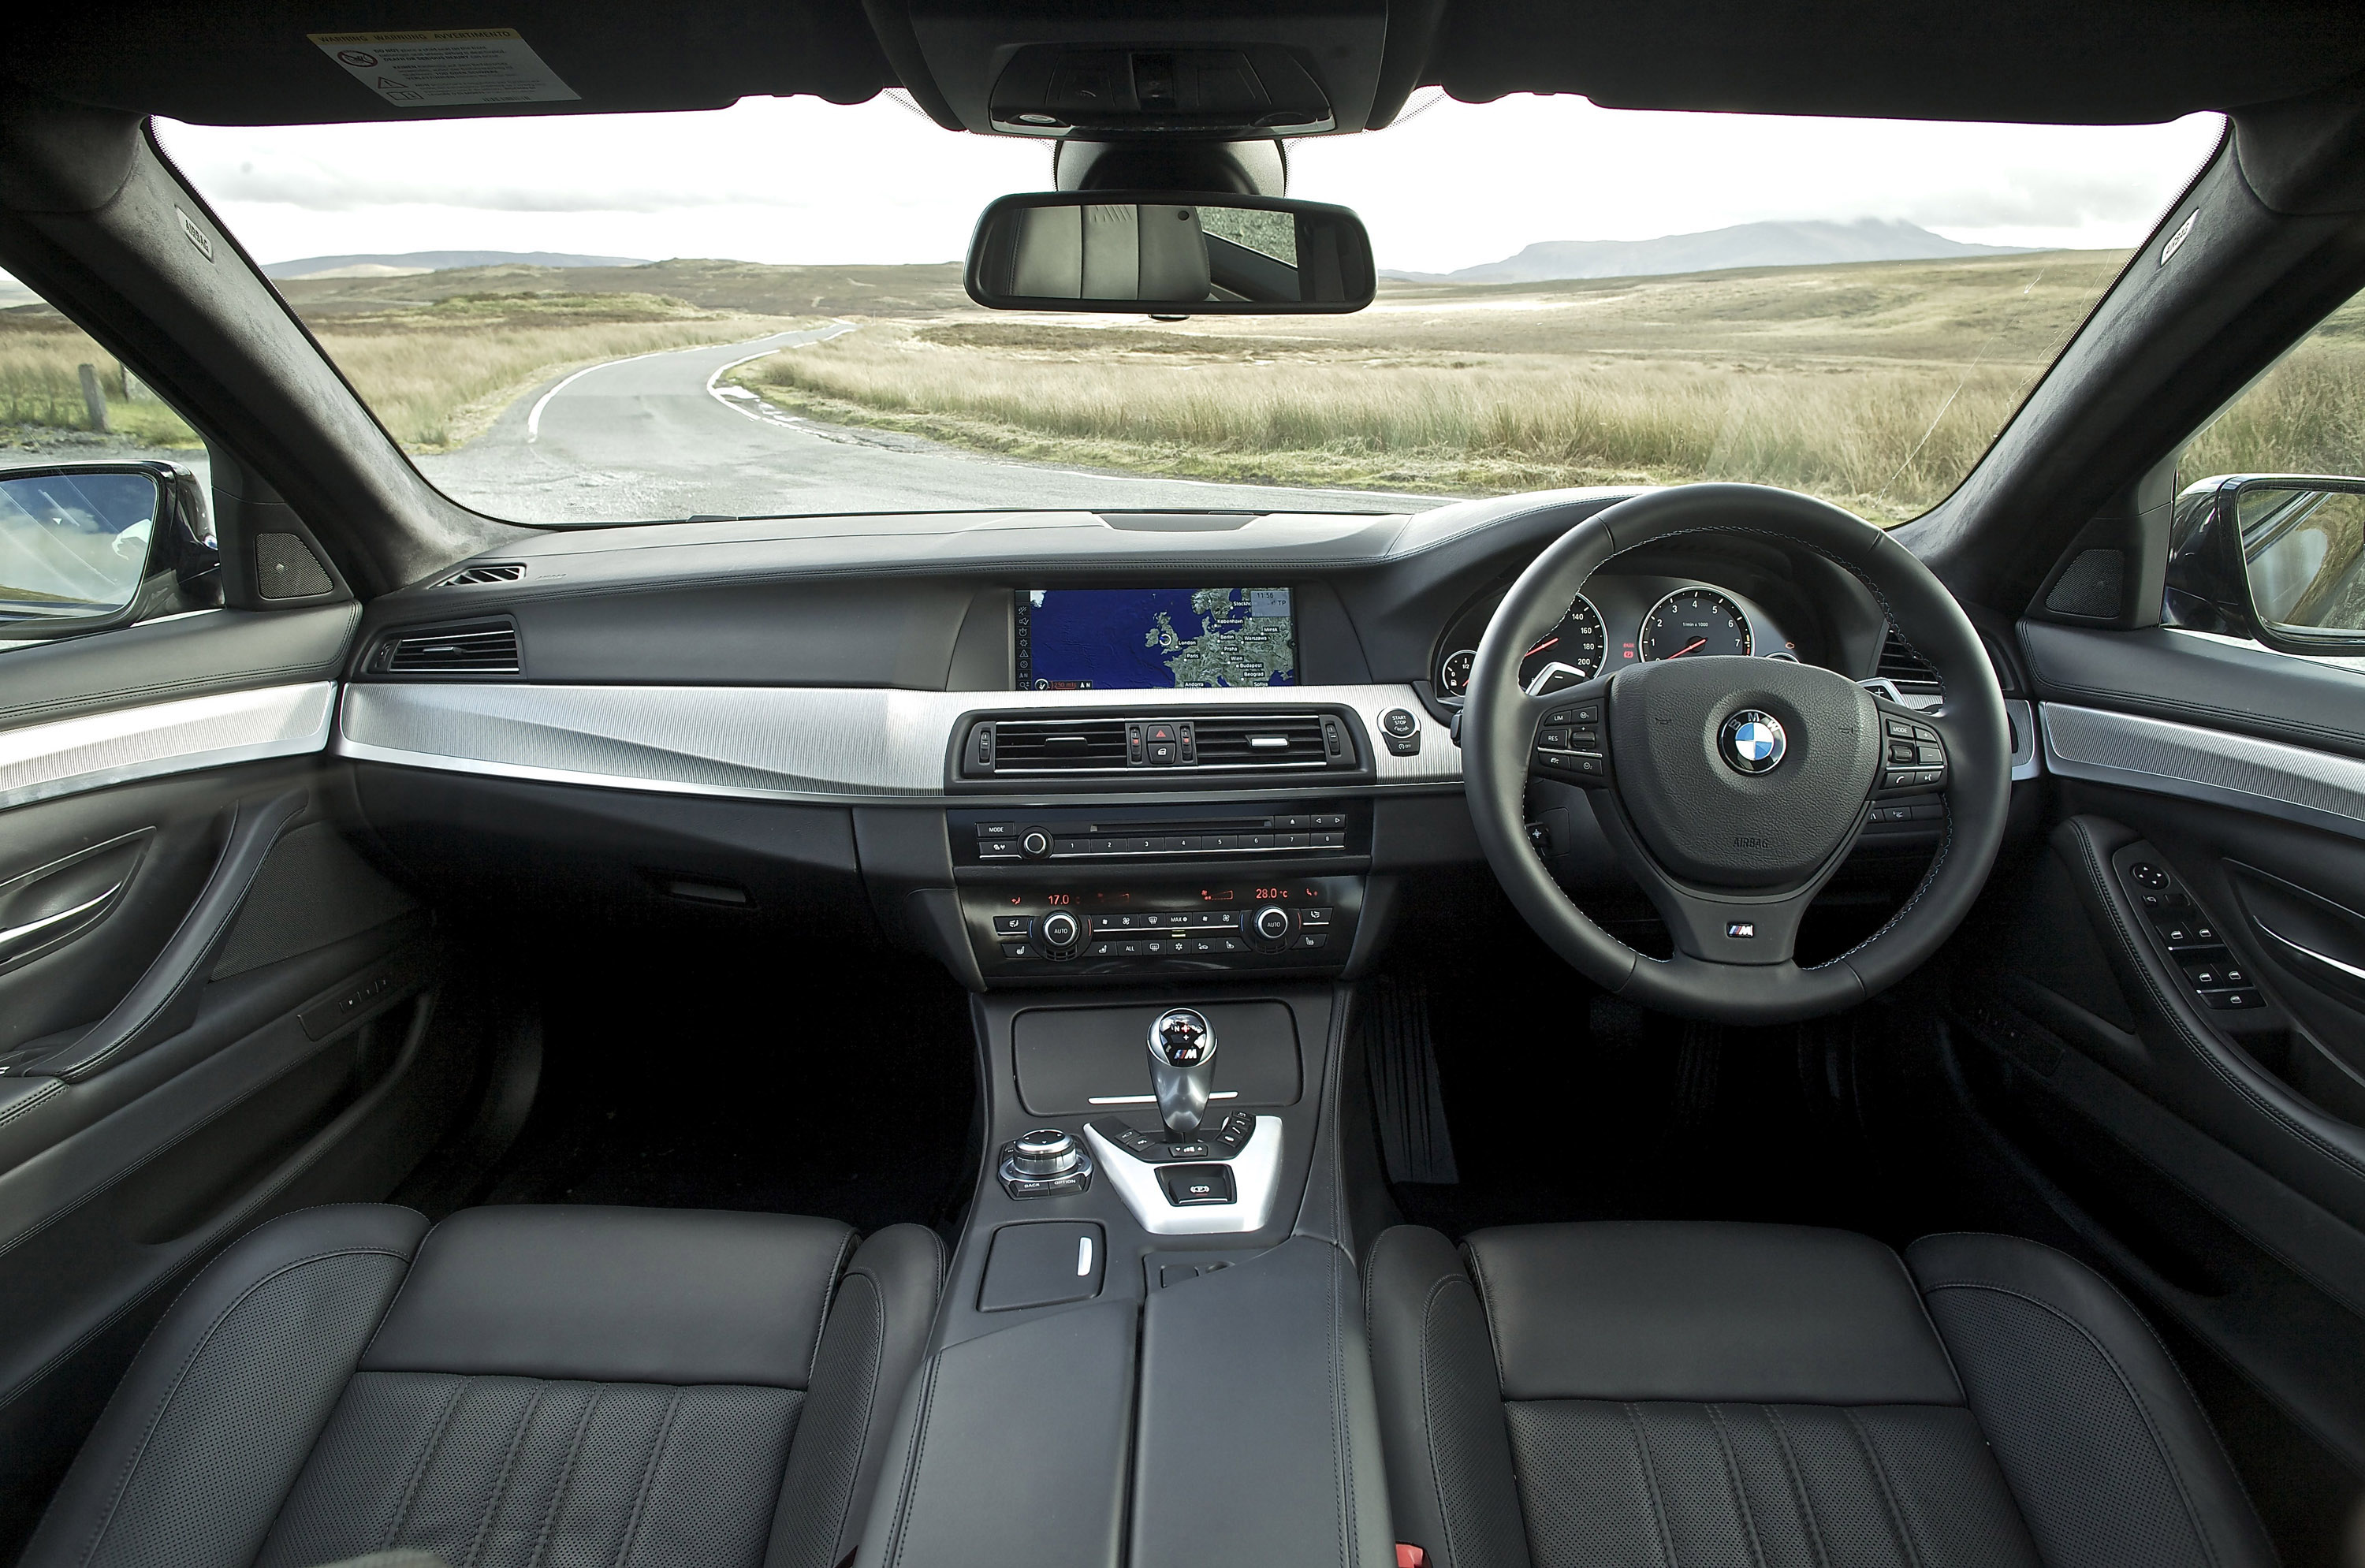 2012 Bmw F10 M5 Saloon Uk Picture 60746